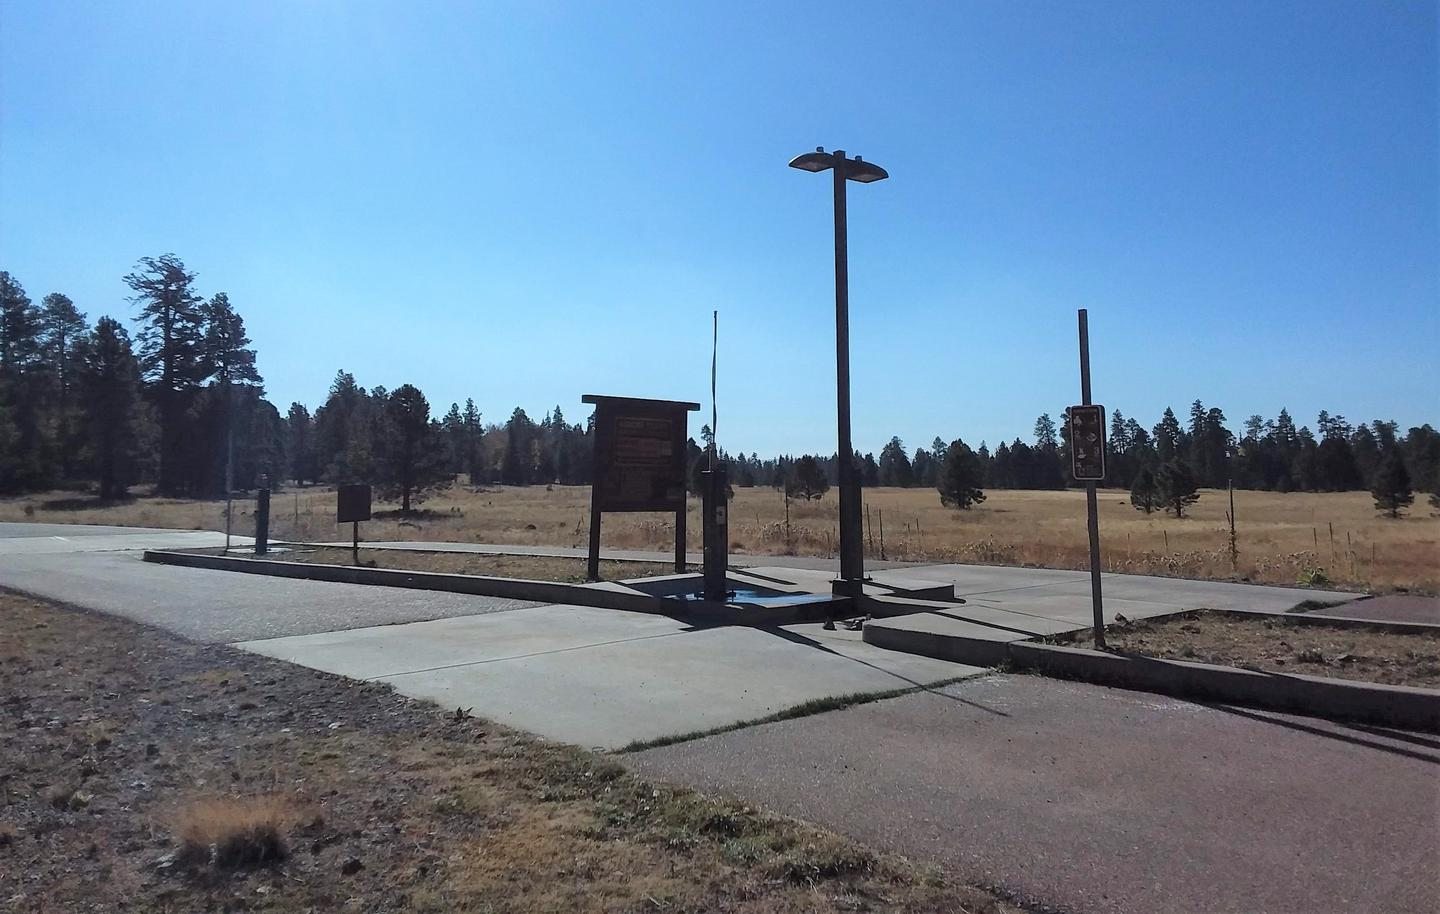 APACHE TROUT CAMPGROUND dump station